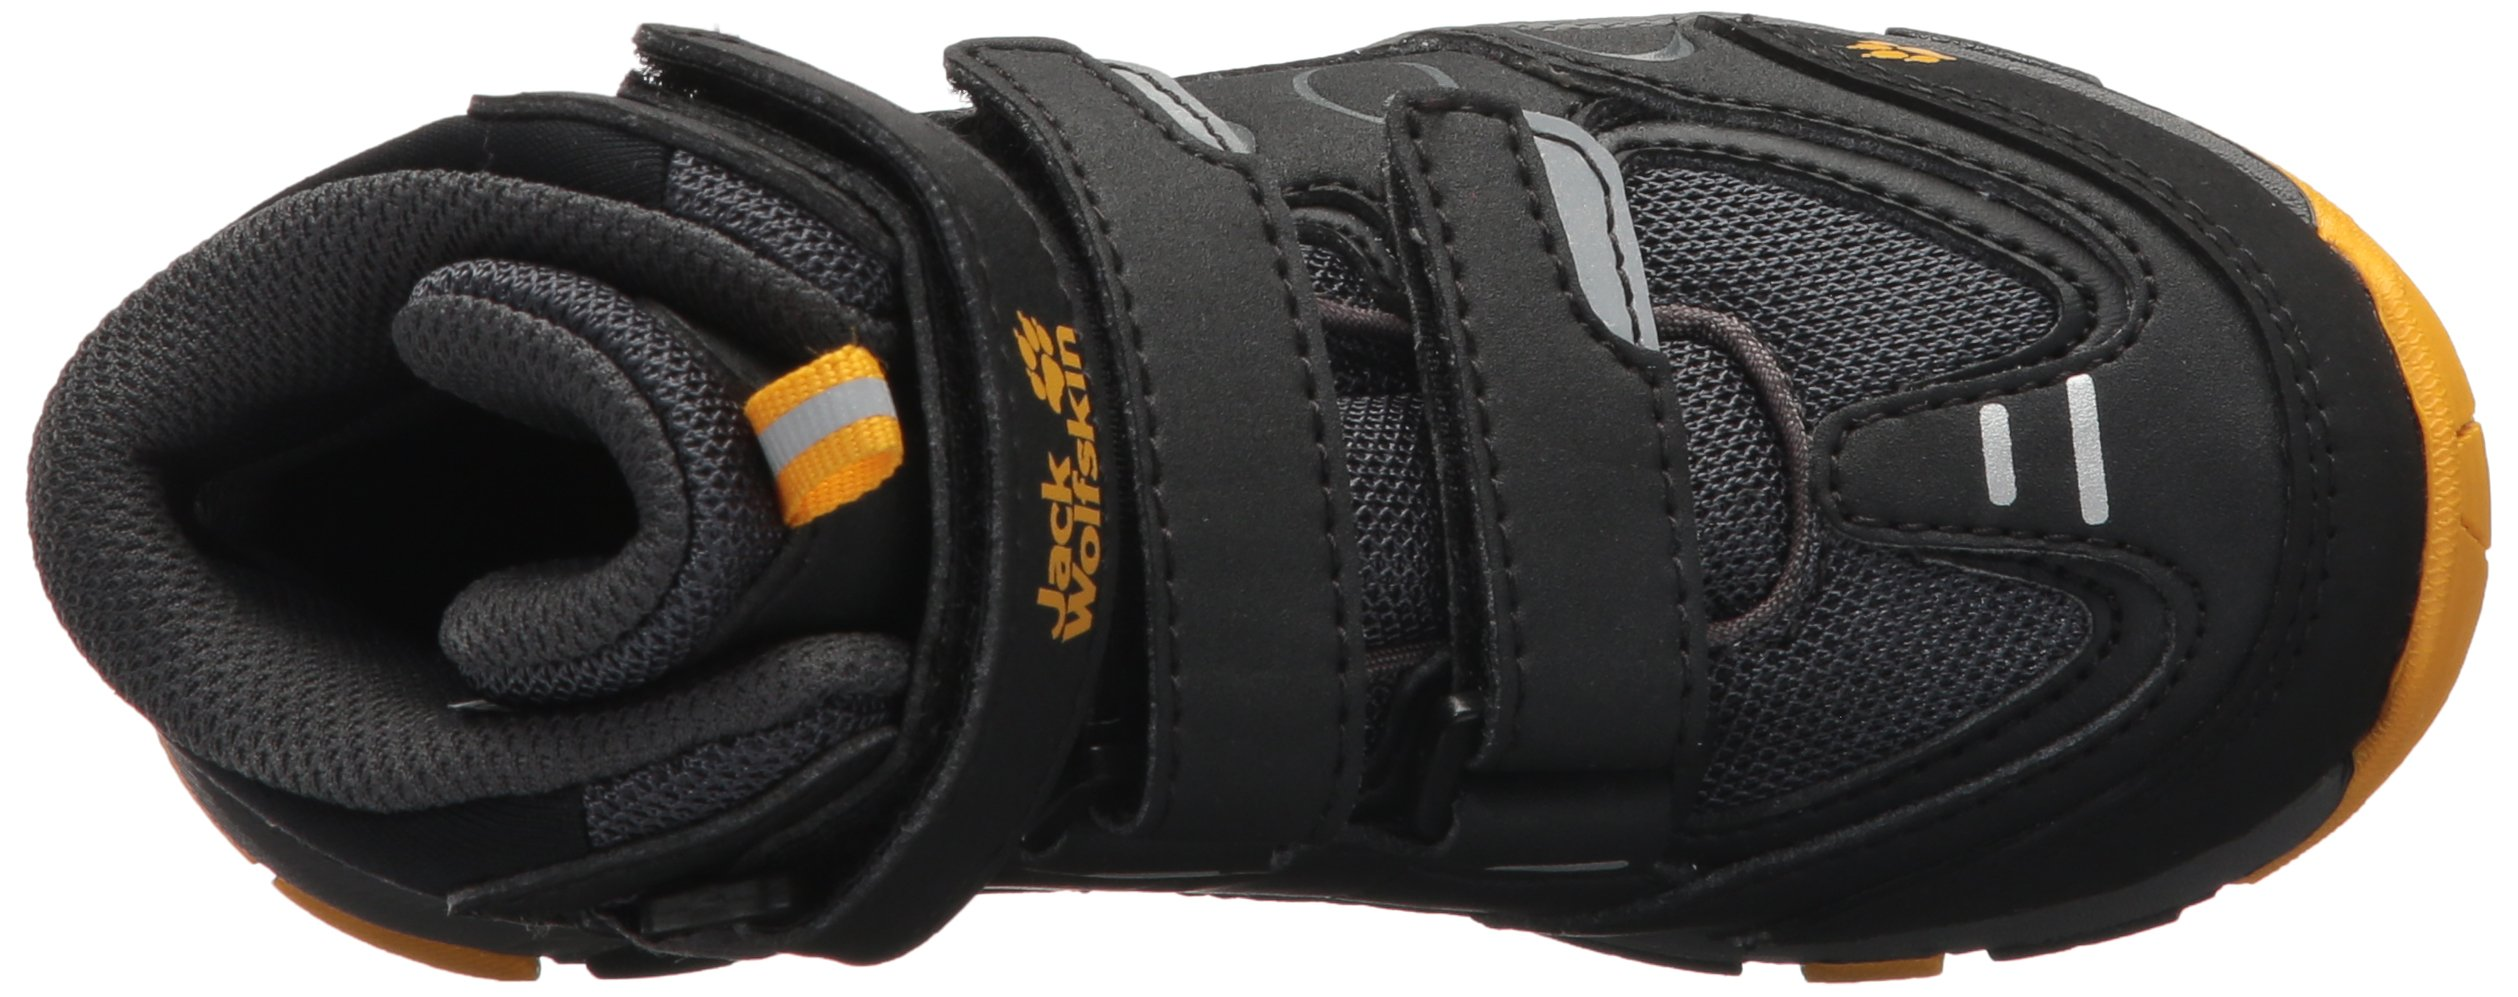 Jack Wolfskin Boy's Unisex Kids' MTN Attack 2 Texapore Mid Vc K High Rise Hiking Shoes Child 8